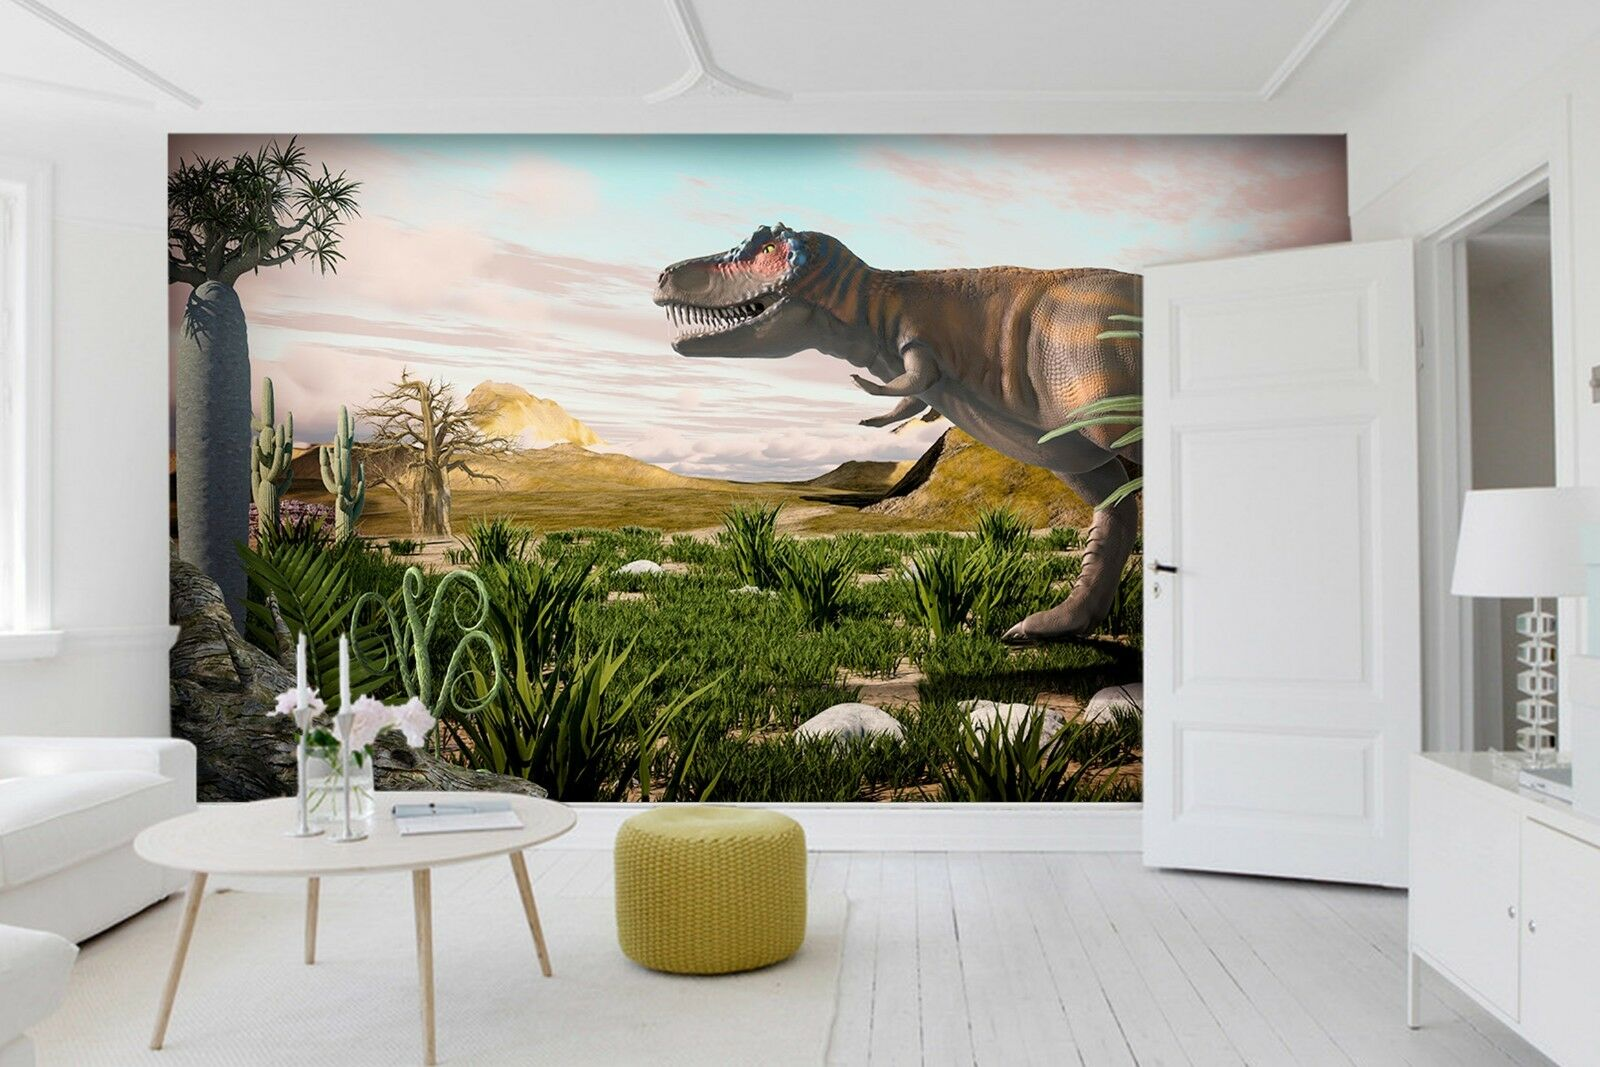 3D Desert Plant Dinosaur 23 Wallpaper Mural Wall Print Decal Indoor Mural AU